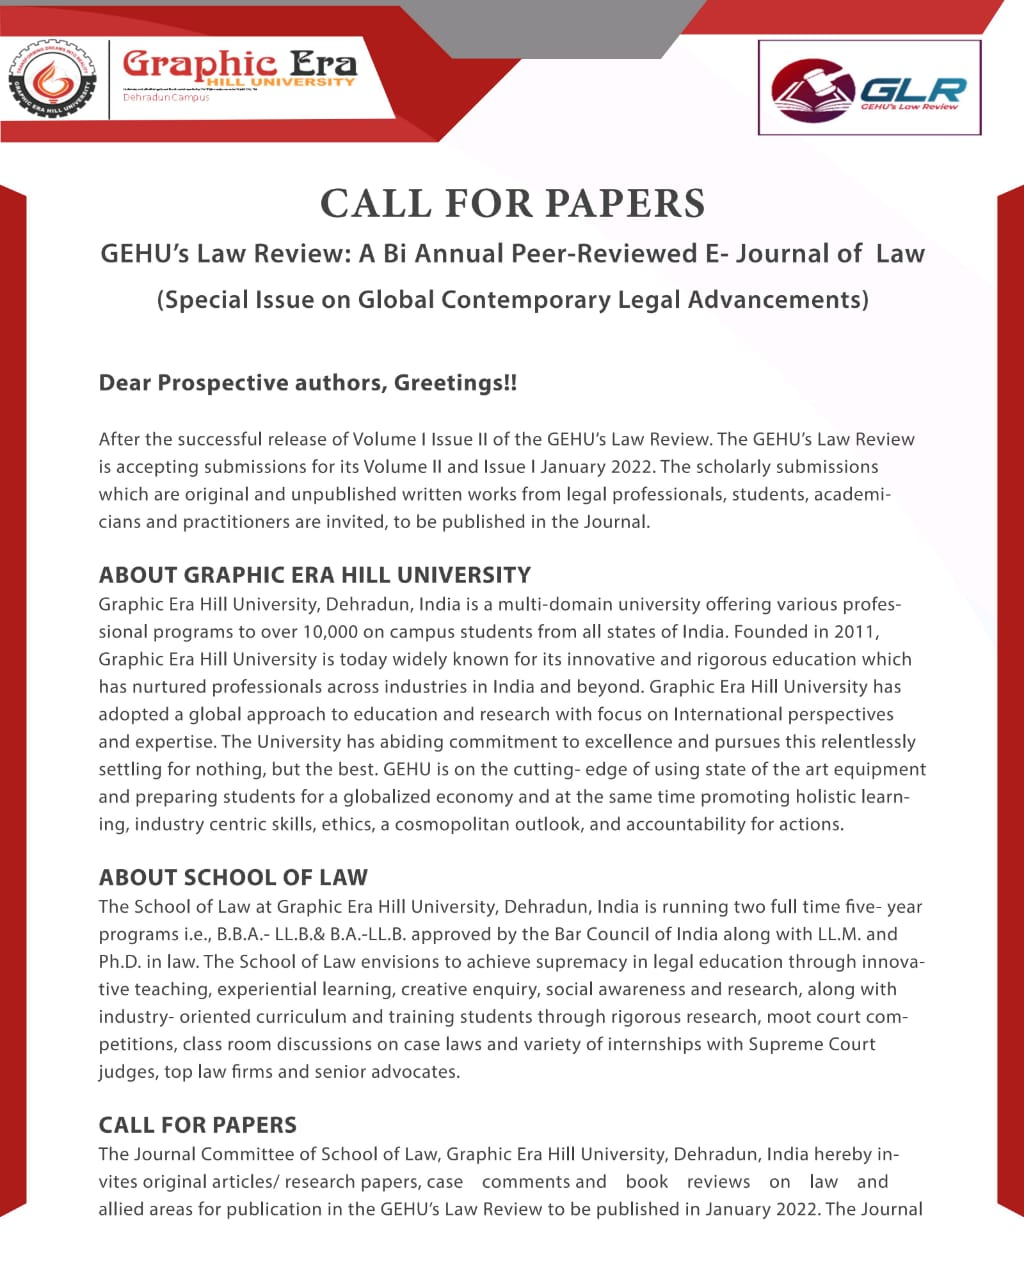 (CALL FOR PAPERS) GEHU's Law Review: A Bi-Annual Peer-Reviewed E-Journal of Law (Special Issue on Global Contemporary Legal Advancements)